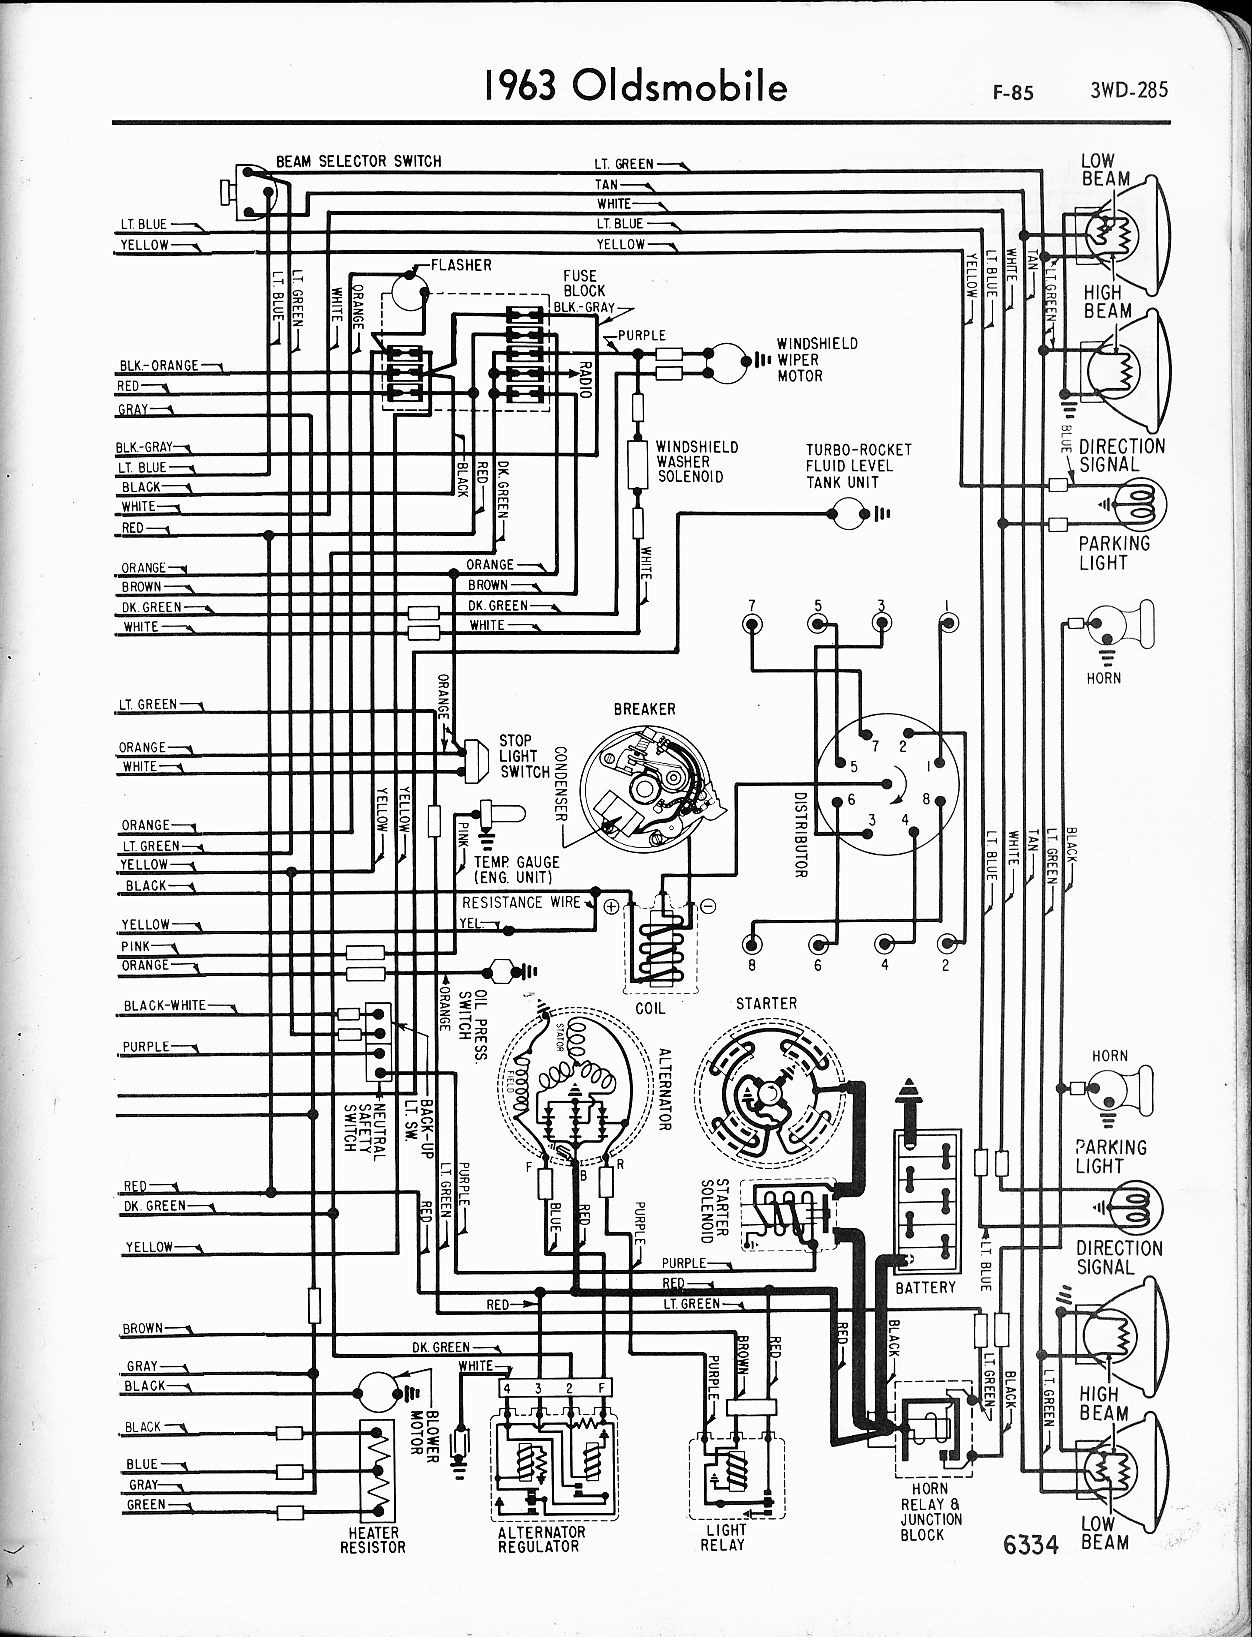 Pontiac Grand Prix Engine Diagram 2007 2001 Se Wiring Reinvent Your Rh Gearway Co 2004